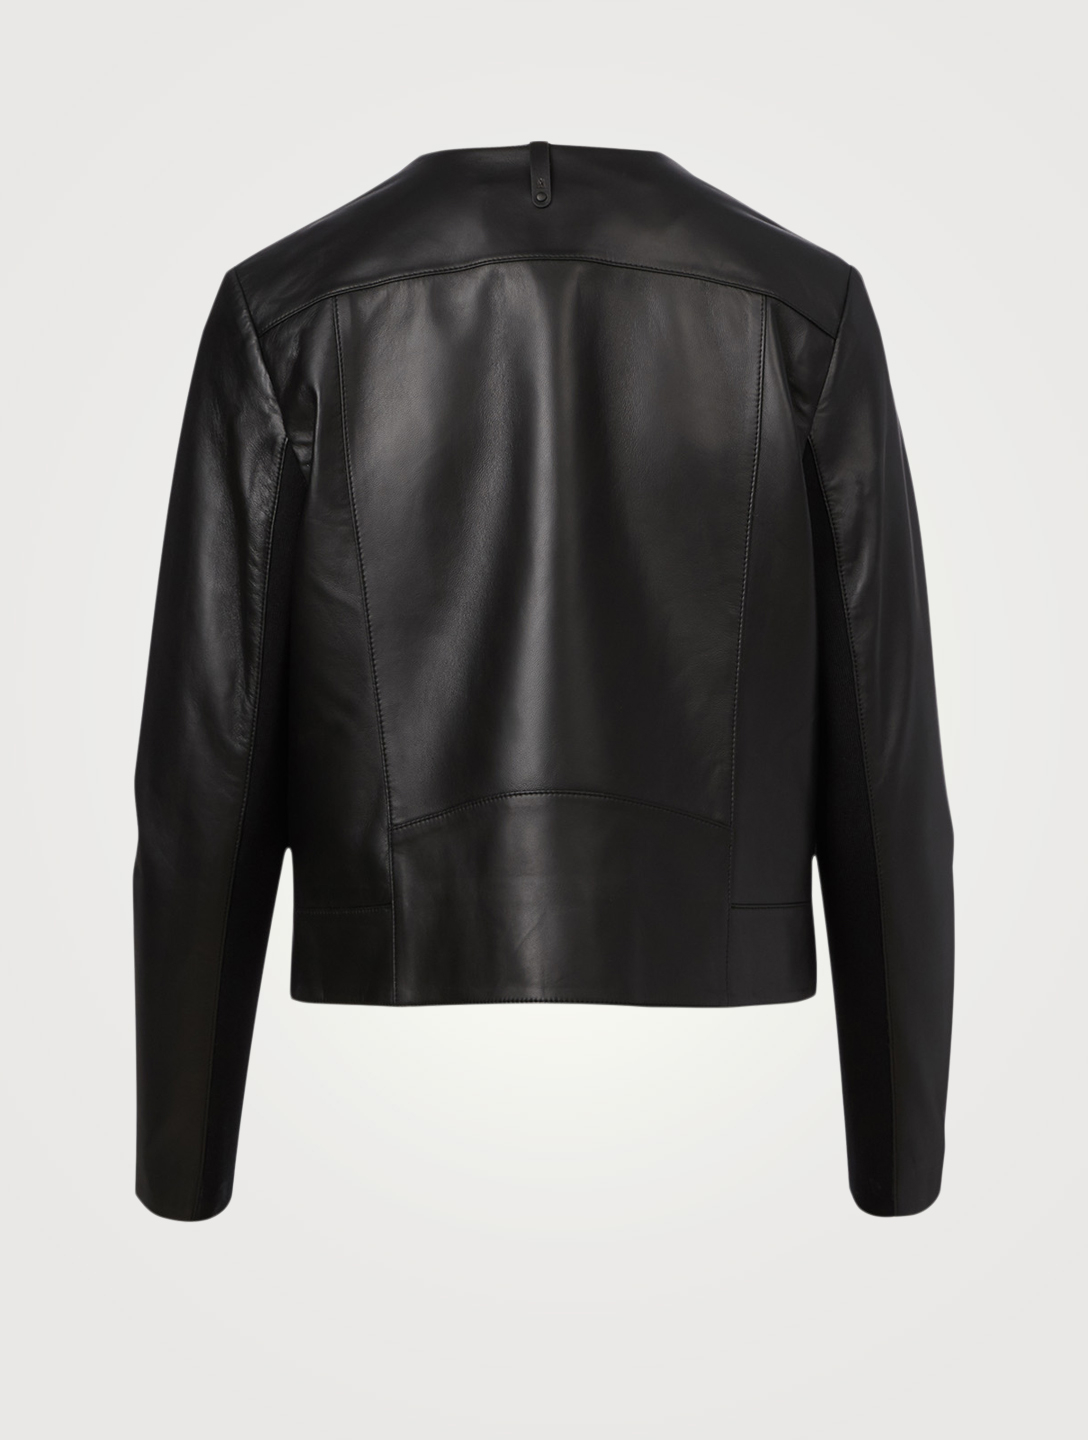 MACKAGE Cali Leather Jacket Women's Black